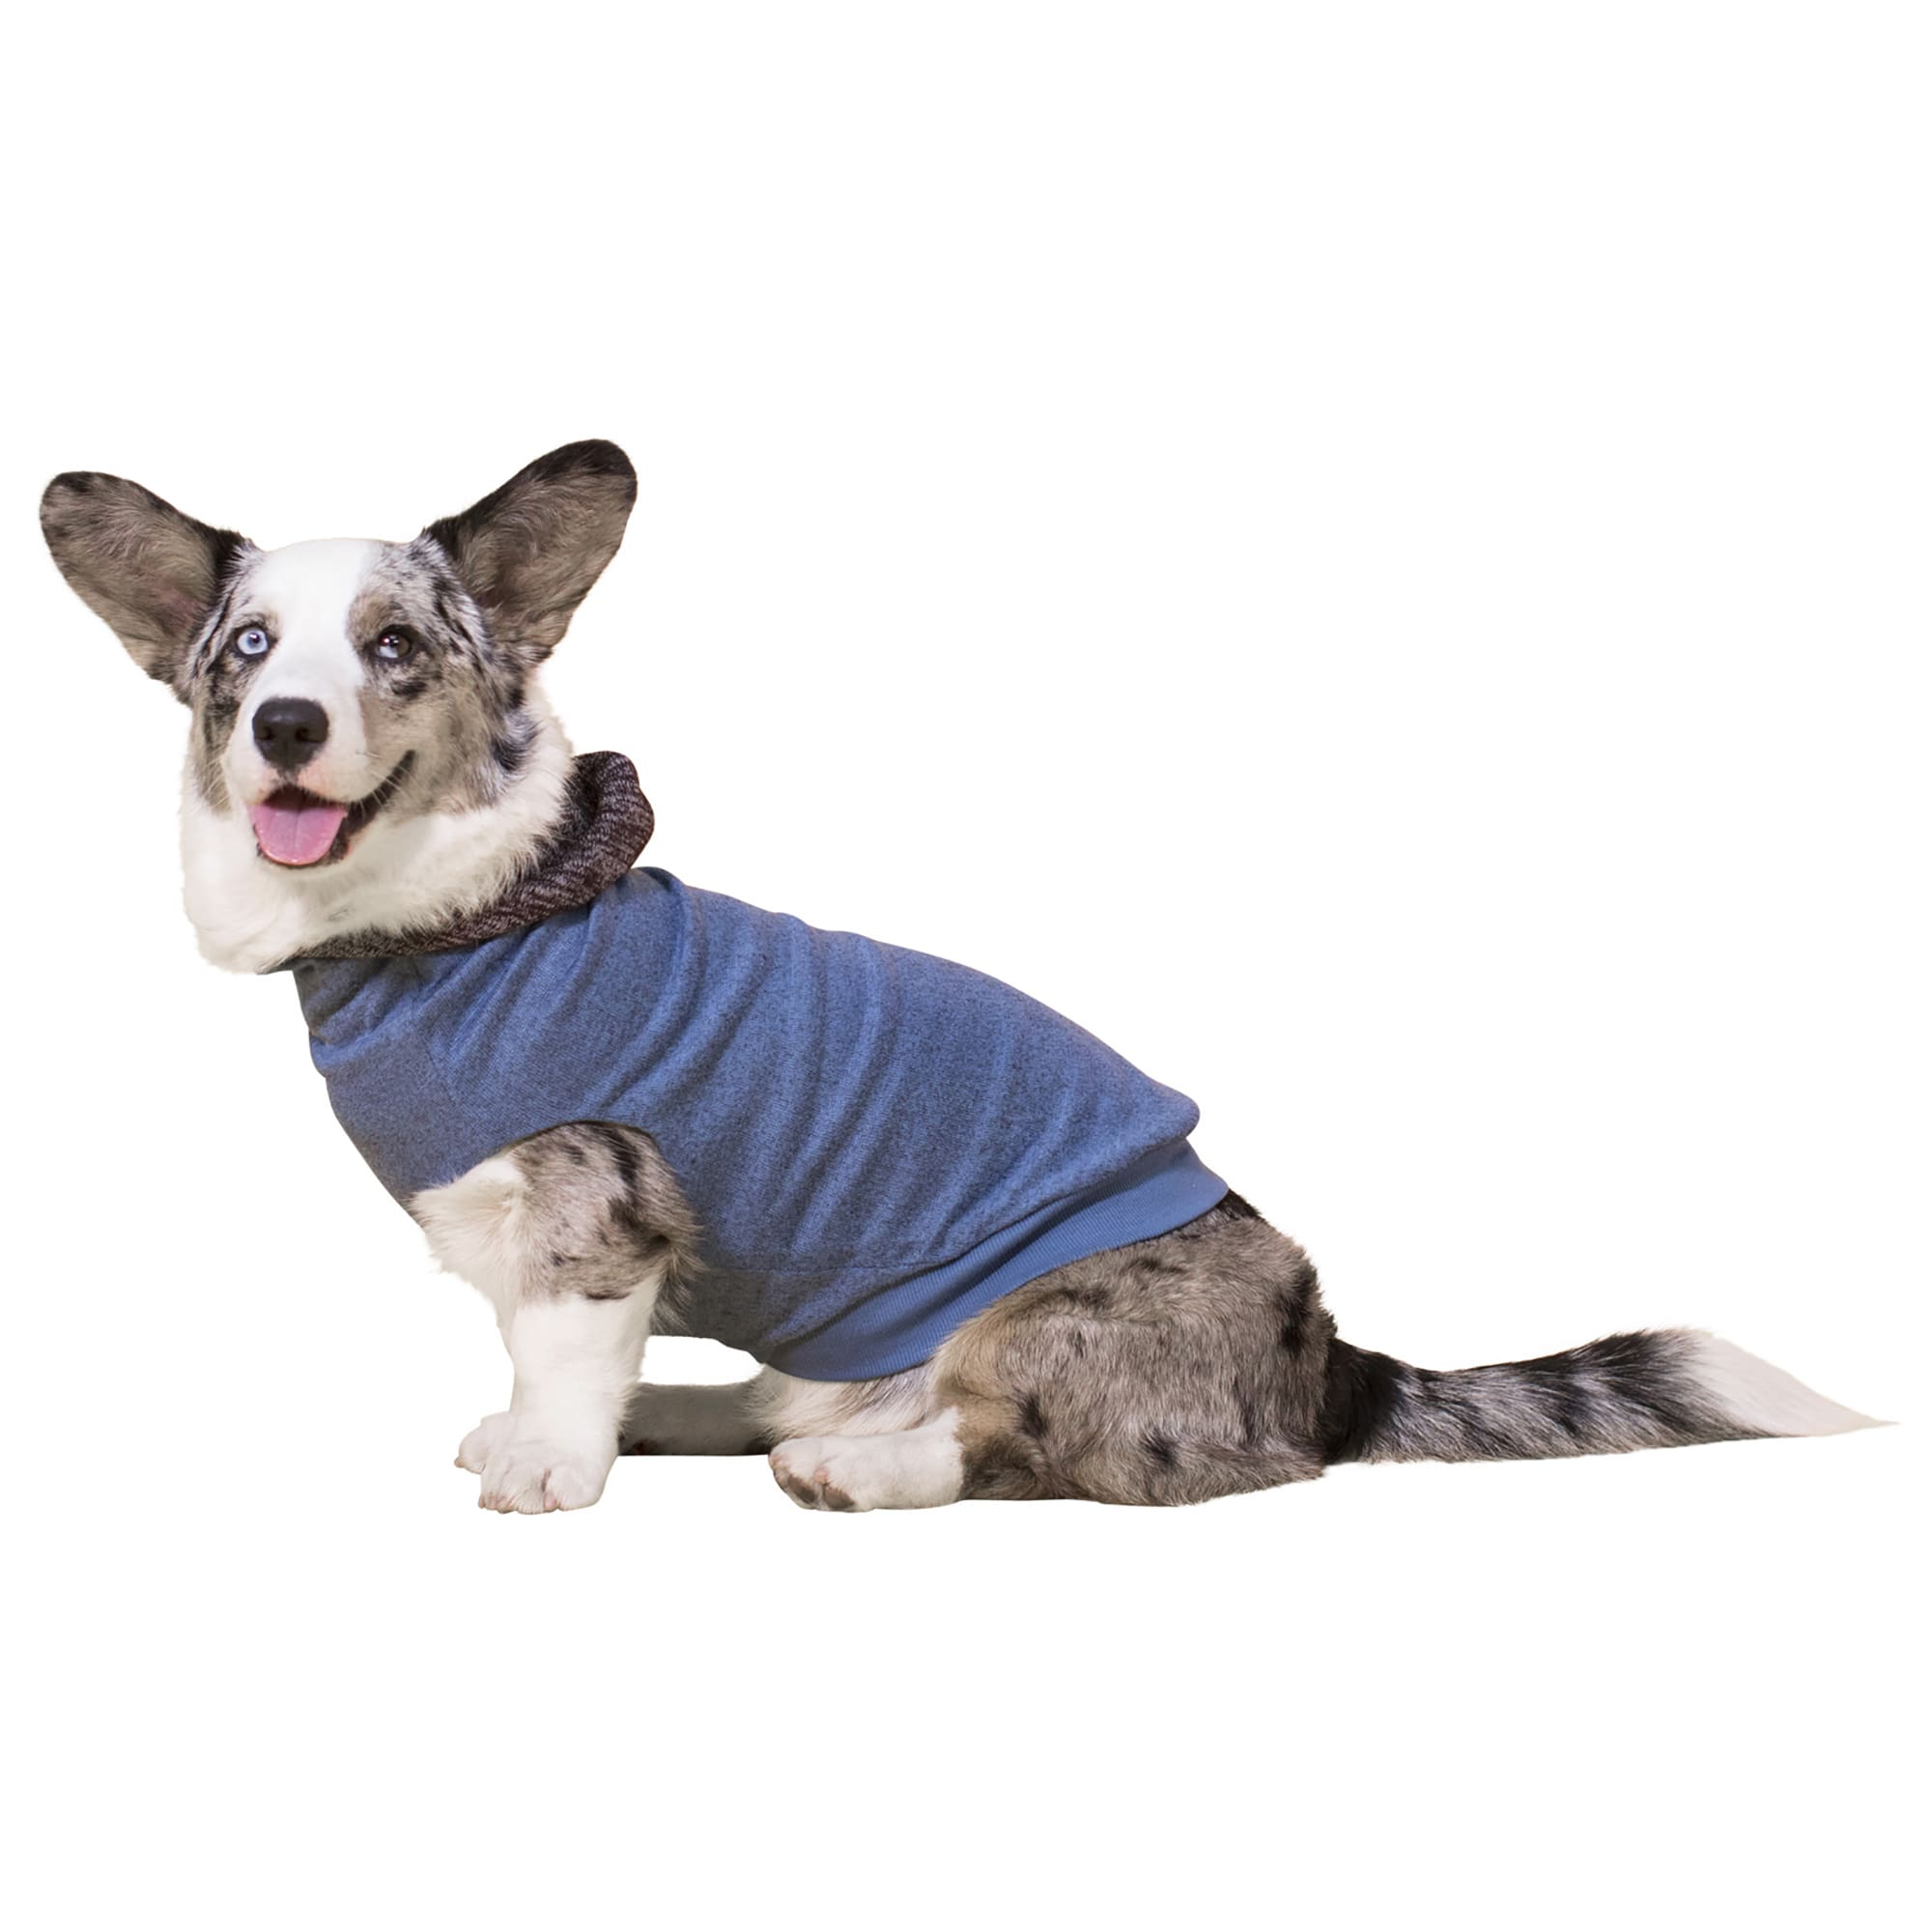 This REVERSIBLE lightweight sweater gives your pup two distinct looks. The tailored design will fit your dog so well you will think it was custom-made for them. One side is a soft hacci knit in light blue with a reverse of black and gray glenplaid sweater knit, complete with a soft contrast knit hood.